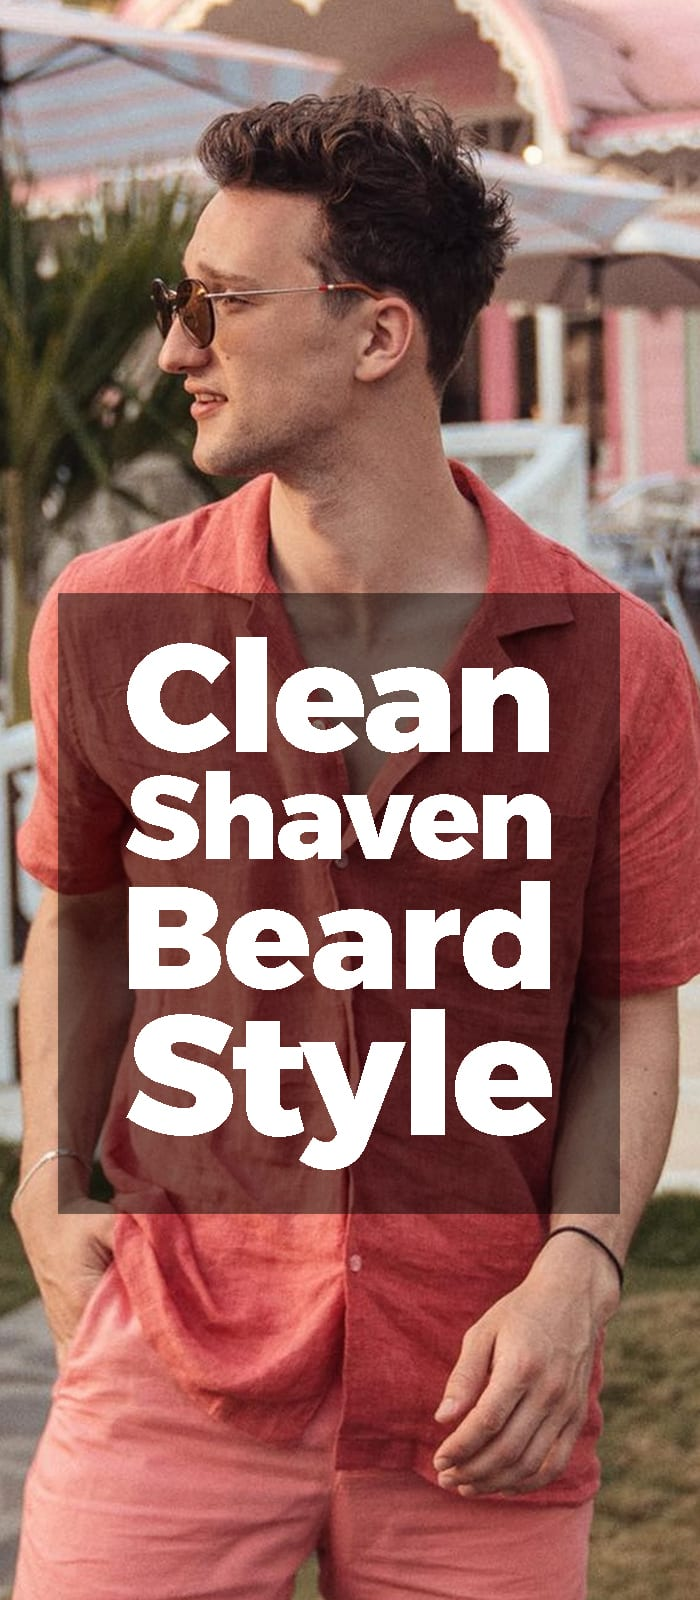 Clean Shaven Beard Style.